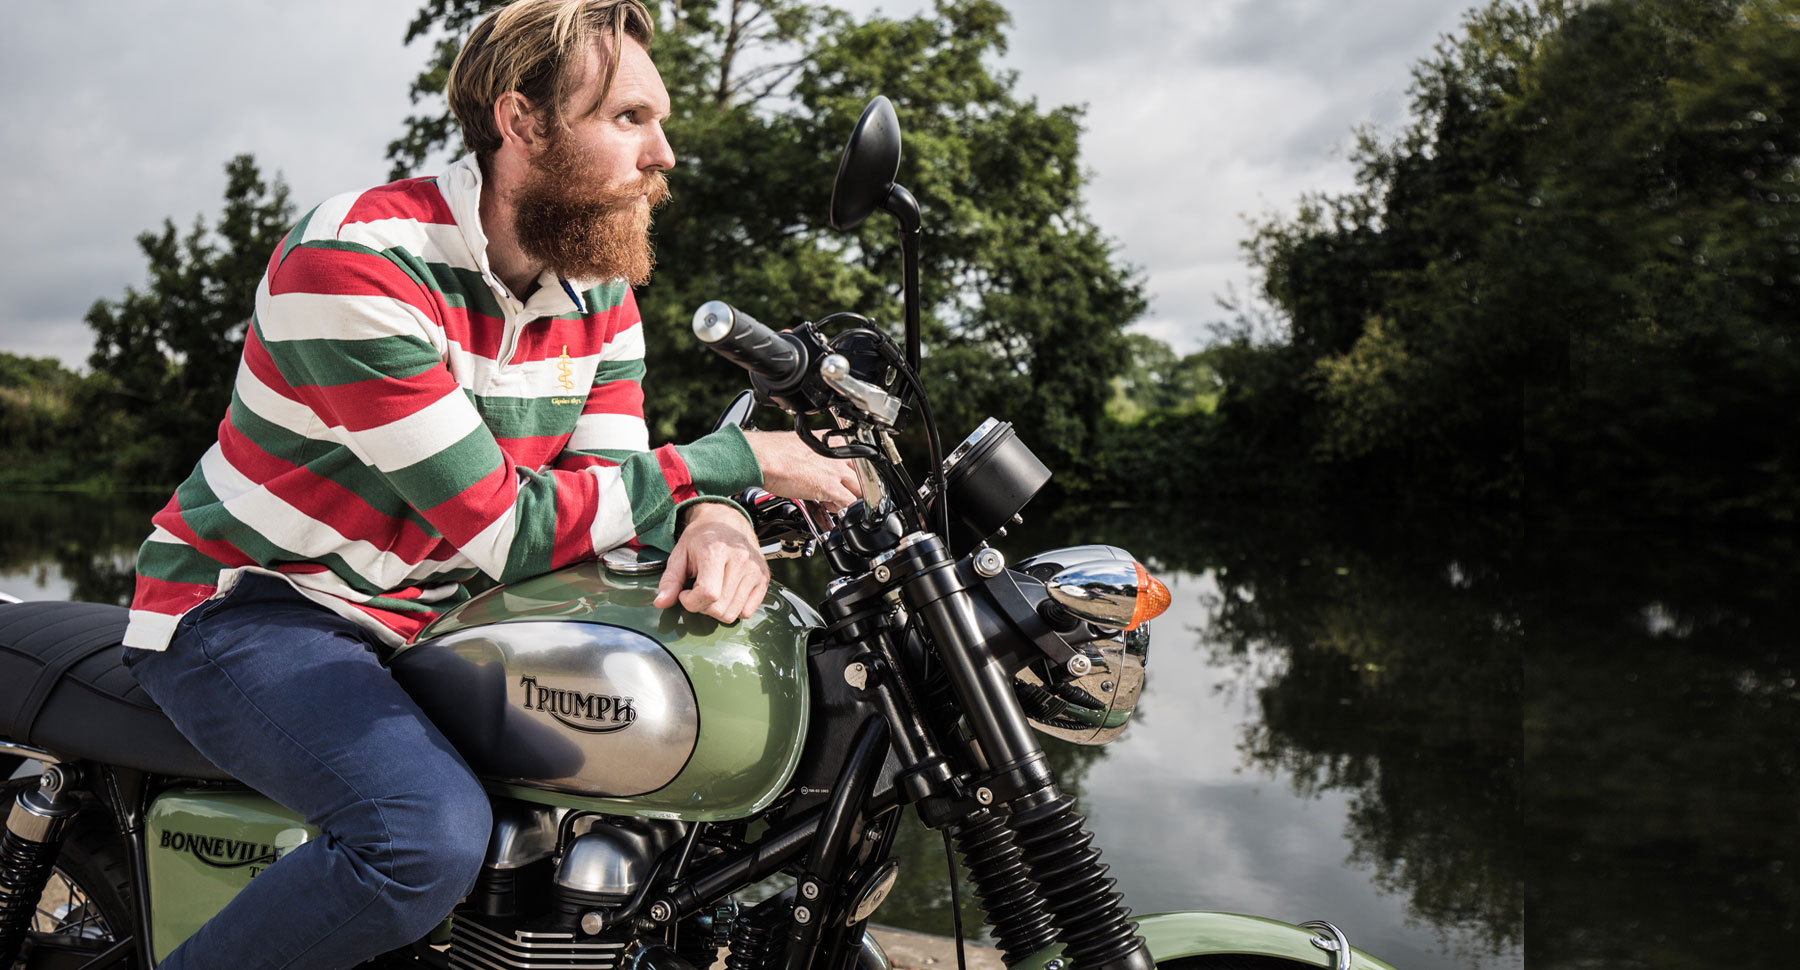 Rugby shirt and Triumph motorbike